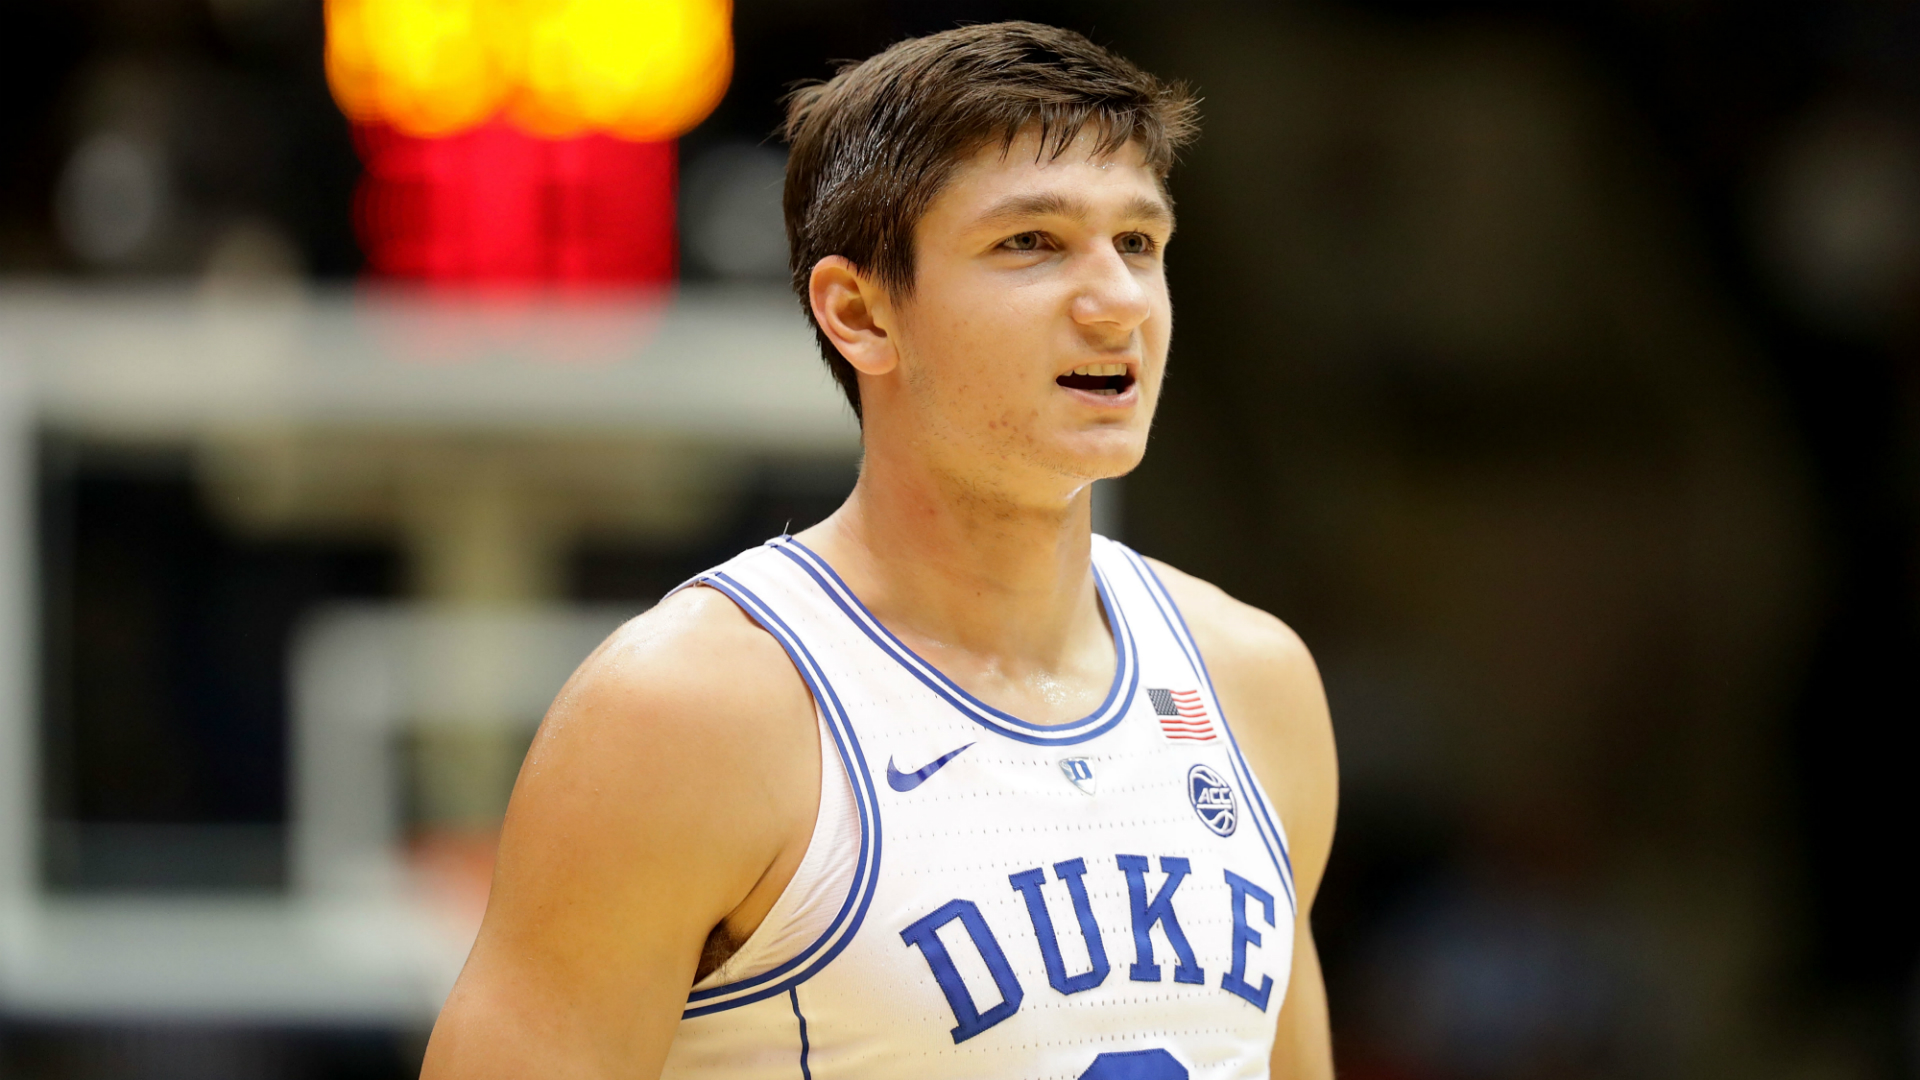 Here's how Duke's Grayson Allen received a black eye vs. Boston College